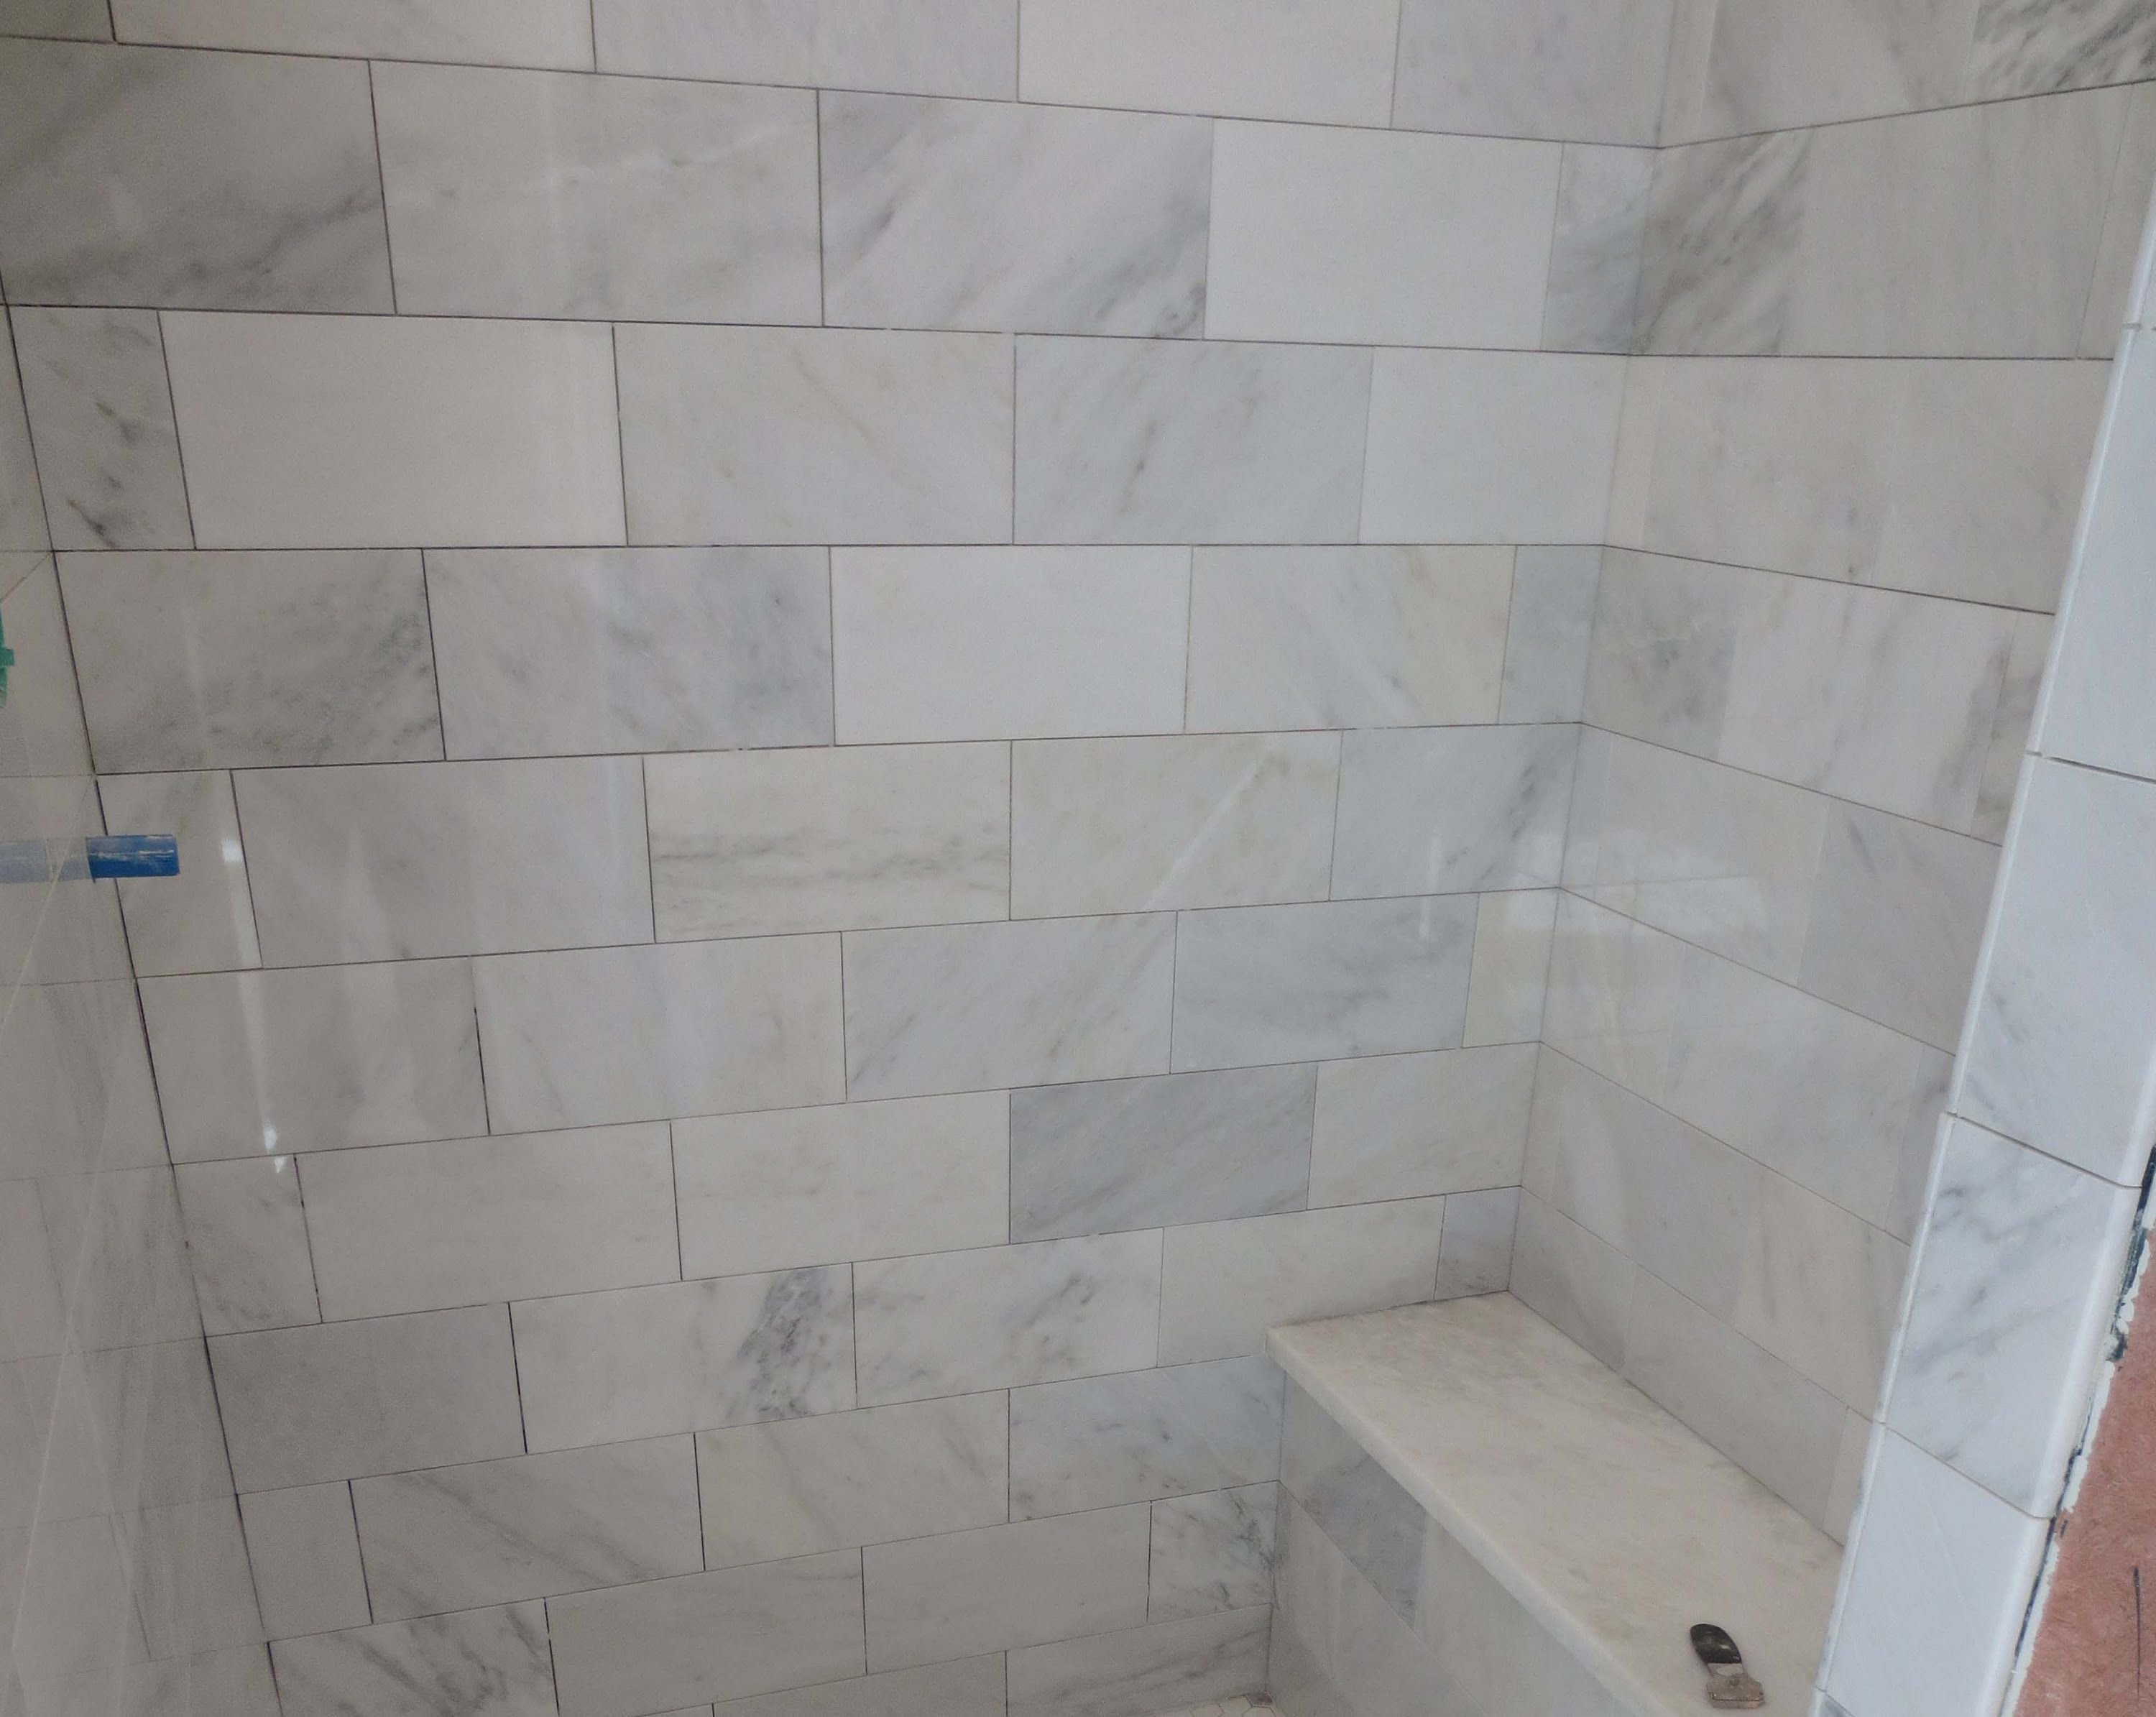 Marble Bathroom Tile the marble carrara tile bathroom part 3 close up look installing